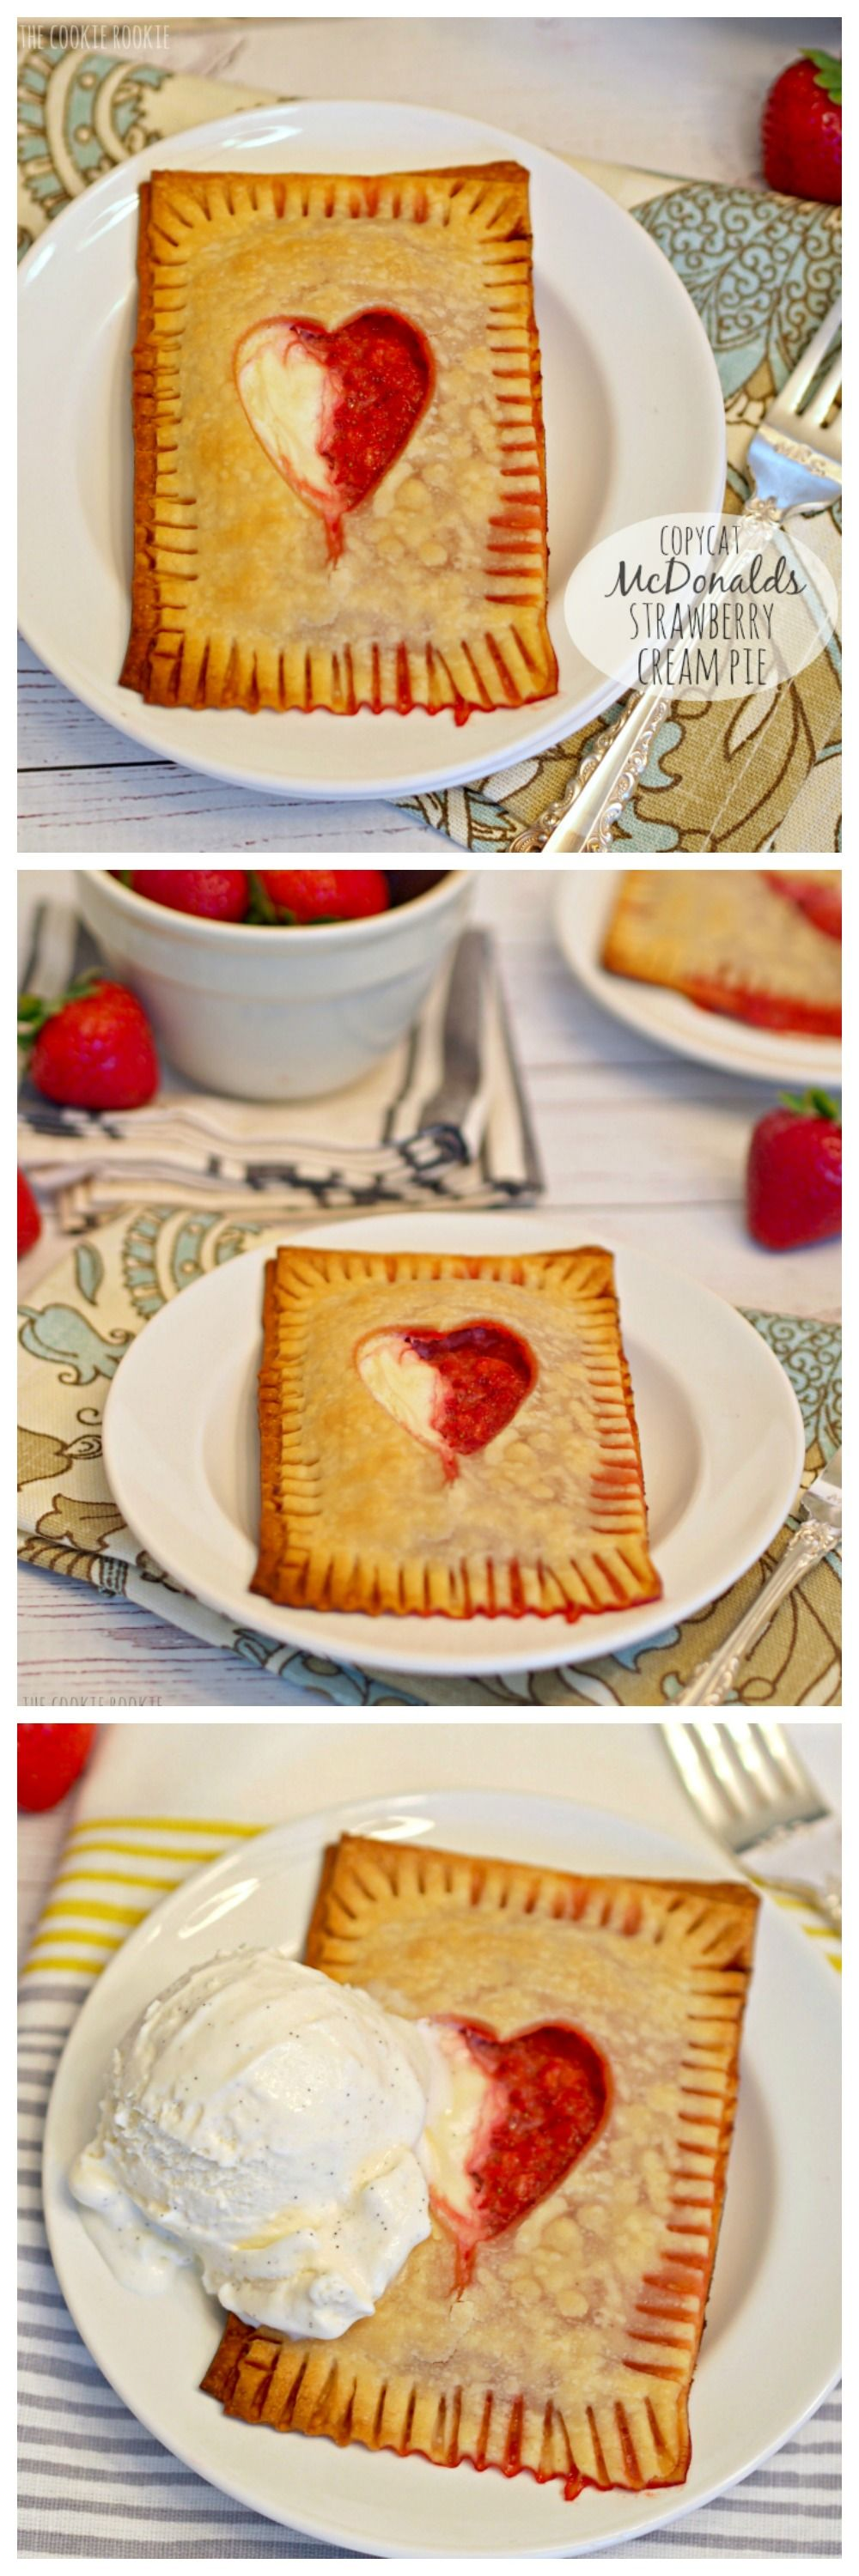 COPYCAT McDonalds Strawberry Cream Pie!! I LOVE THESE!! So cute and easy.  - The Cookie Rookie